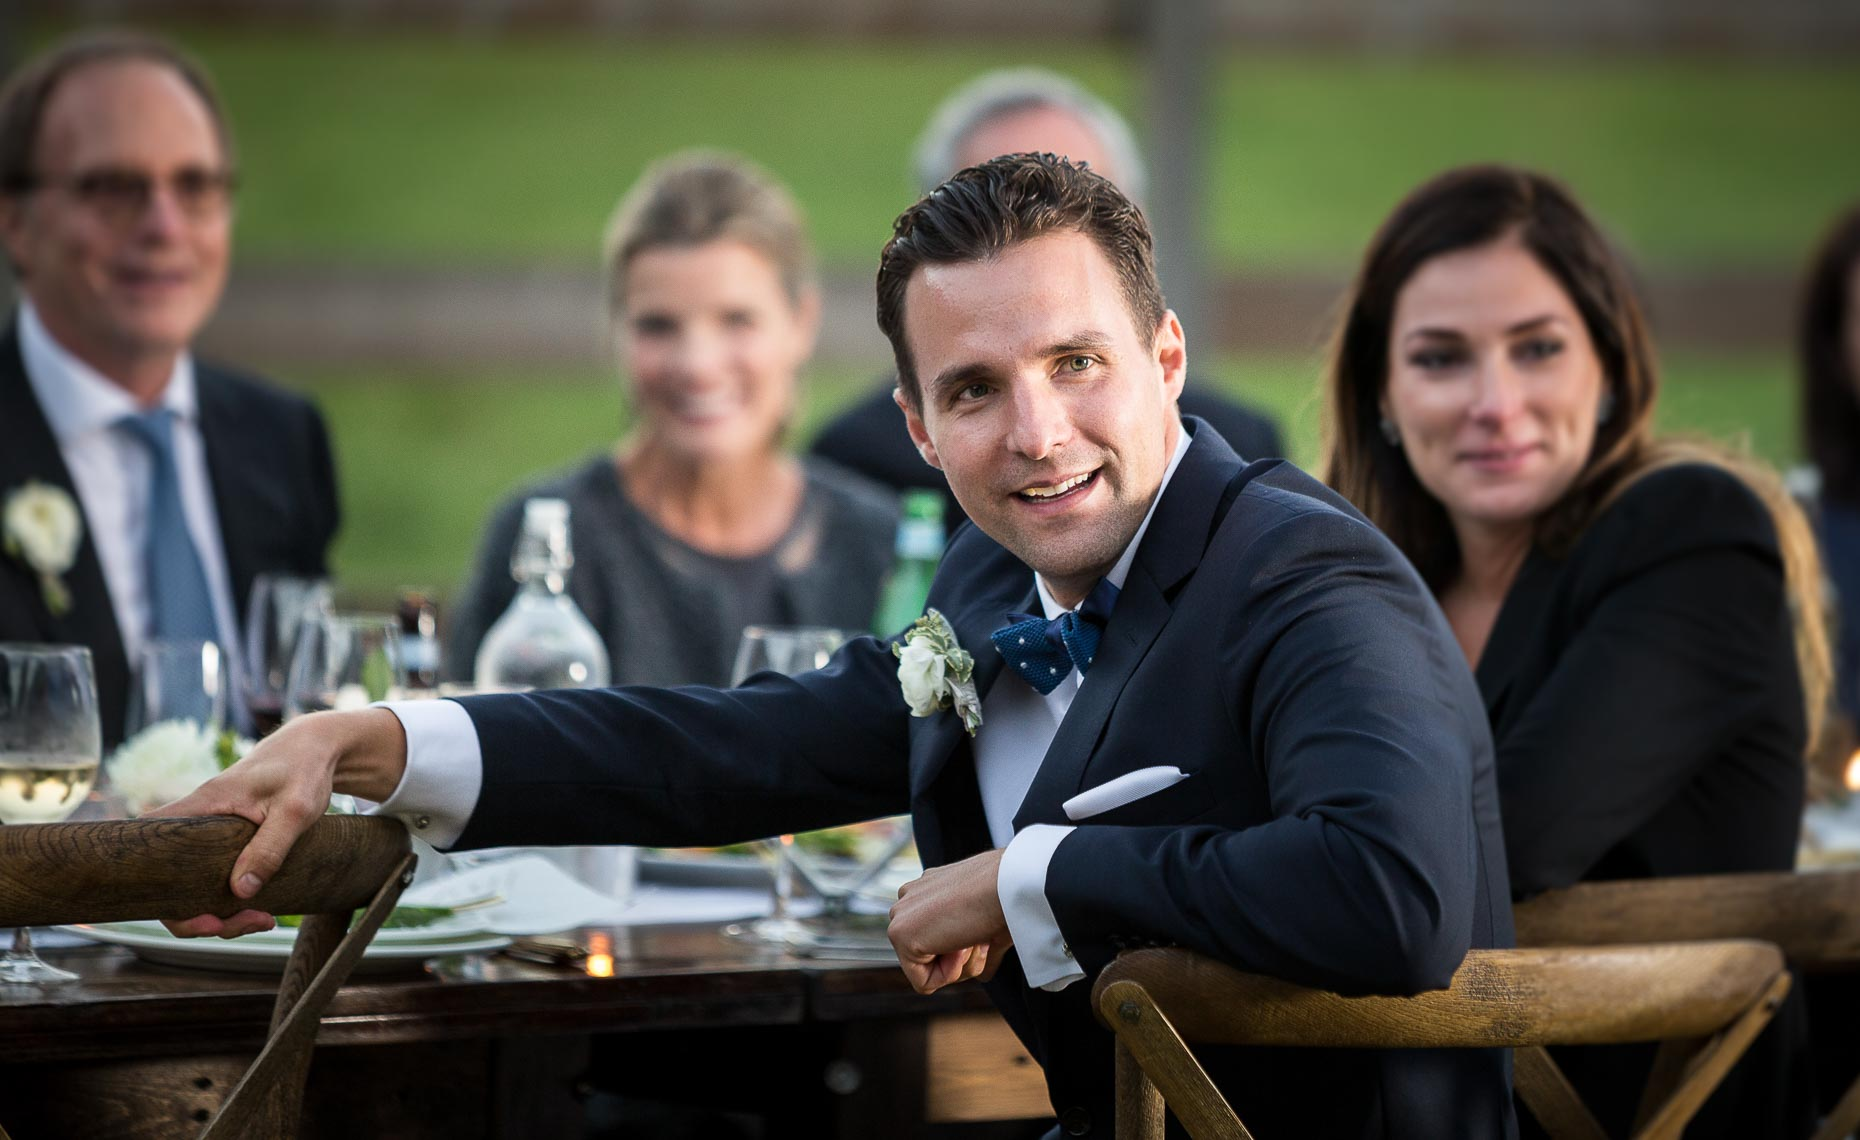 Memorable moments during speeches photographed during whistler wedding reception